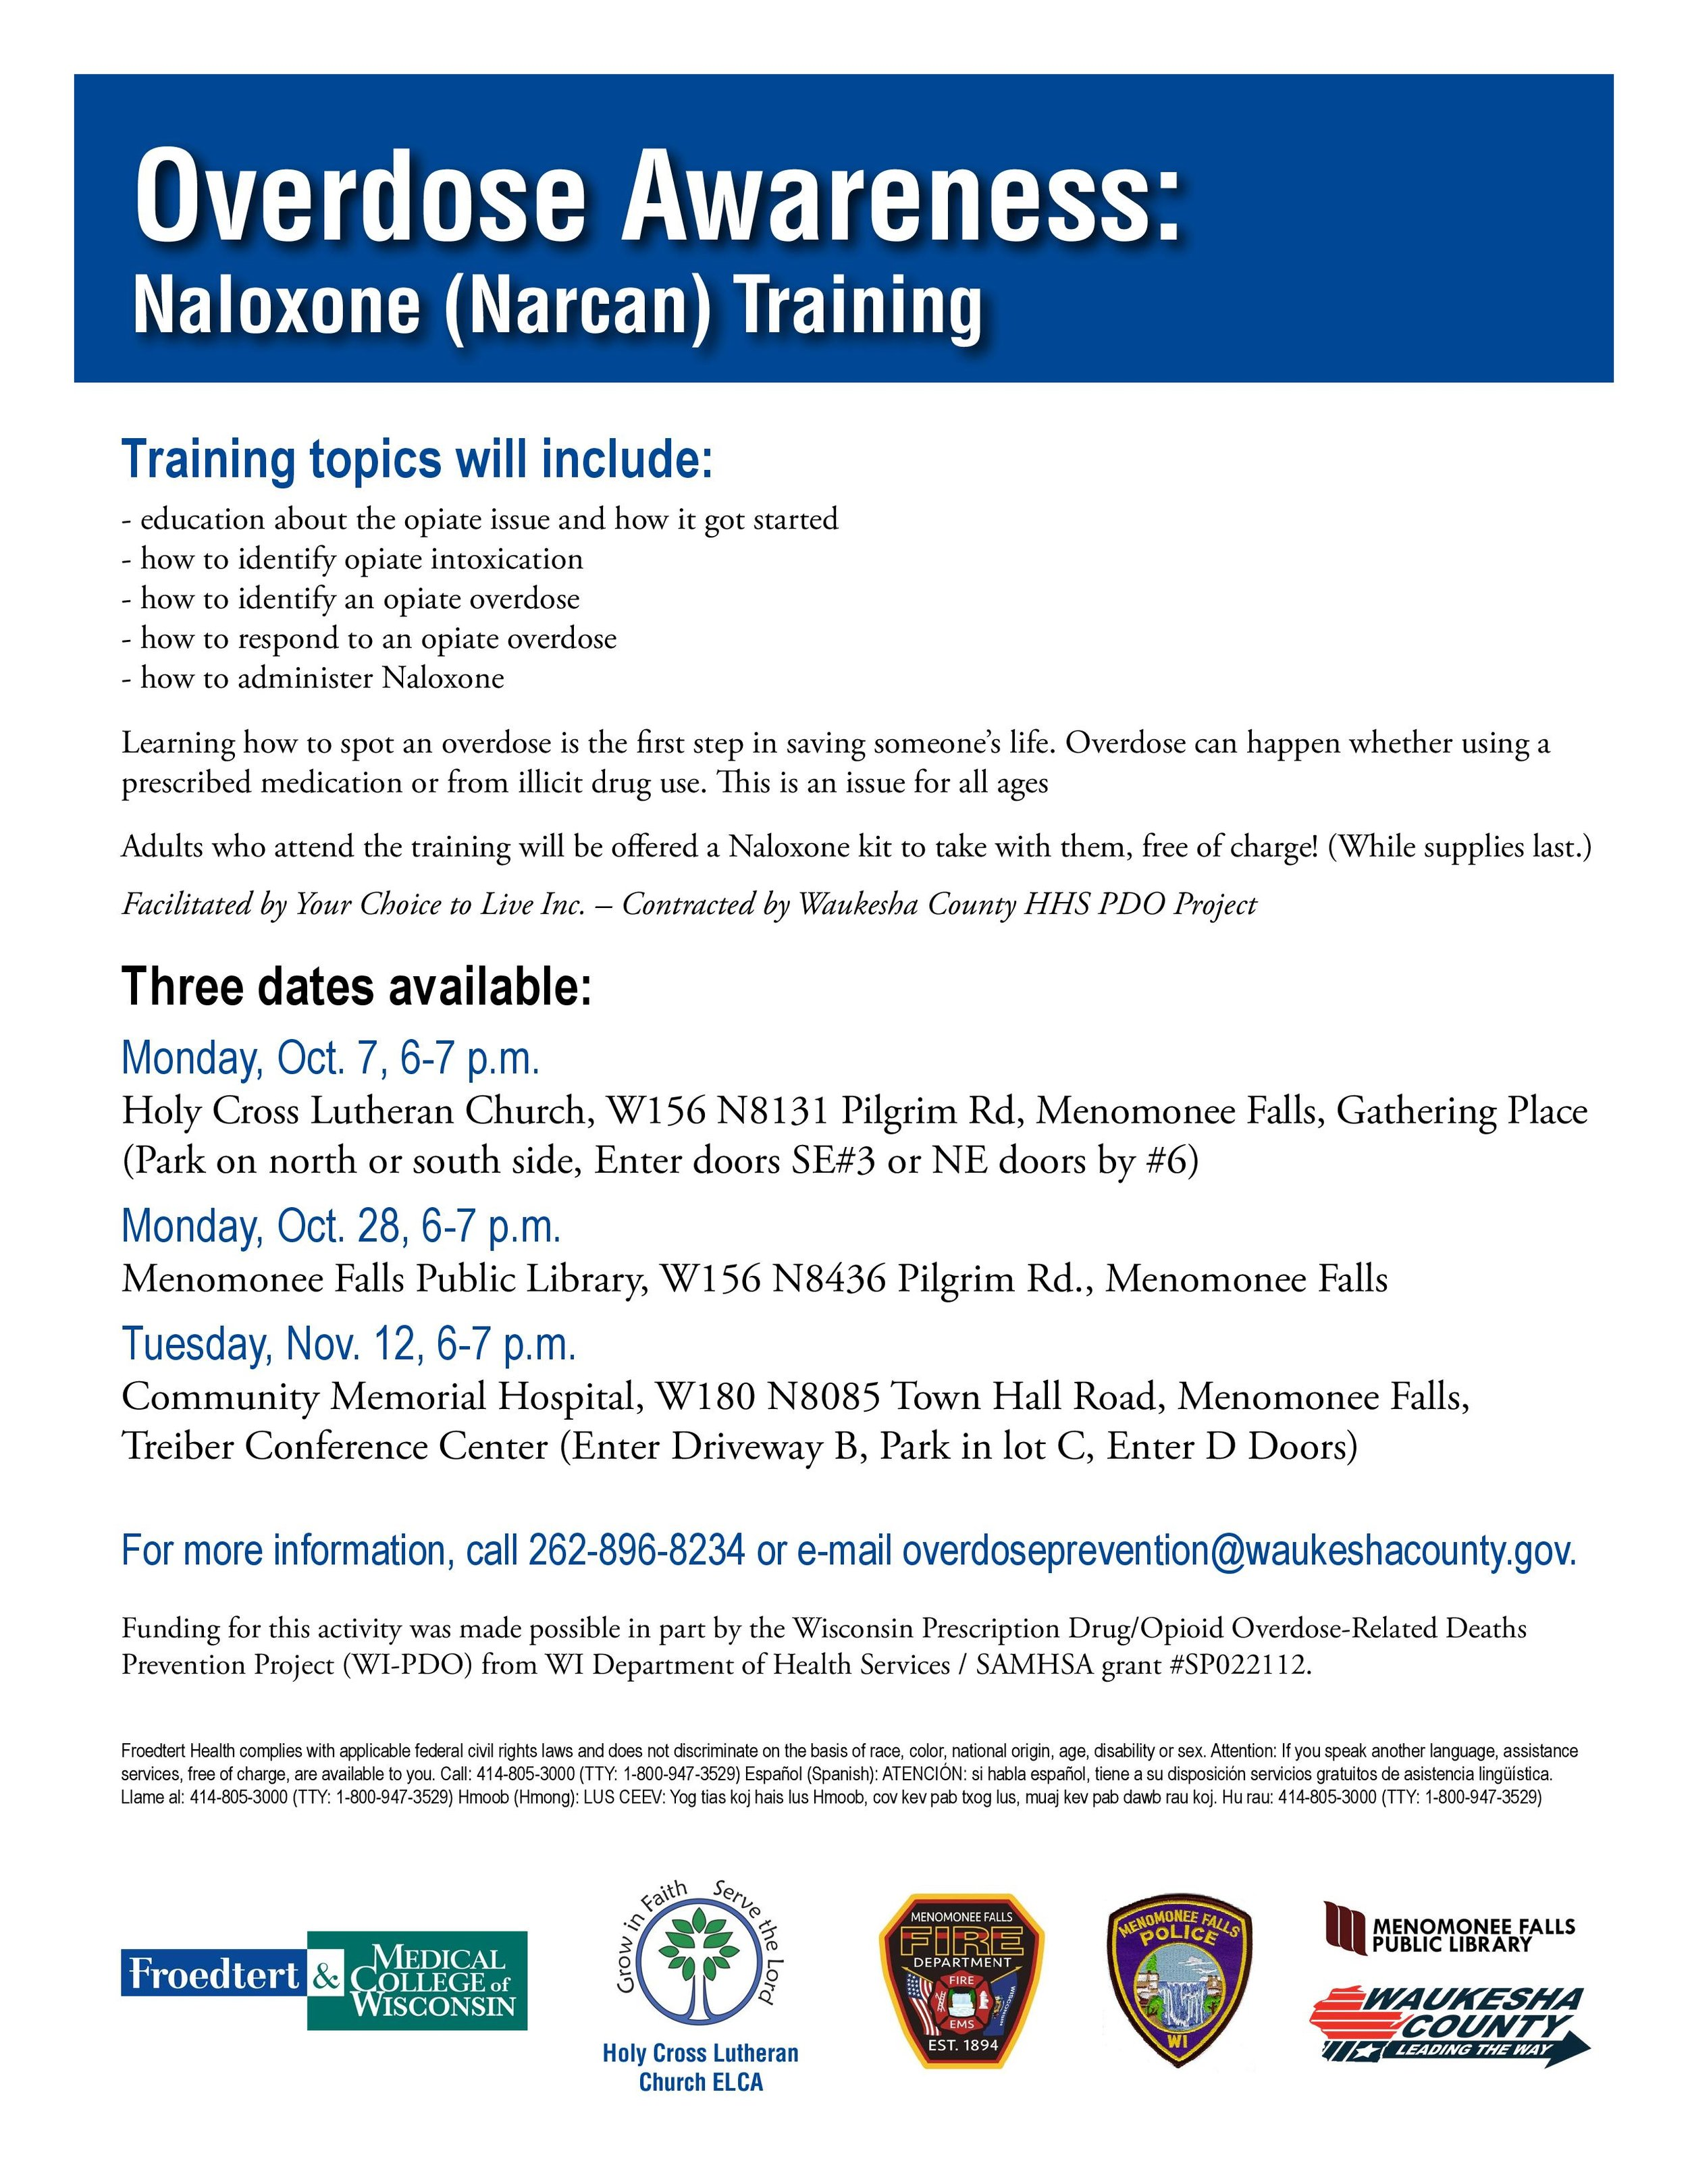 2019 MF Narcan Training Flier (1)-page-001.jpg